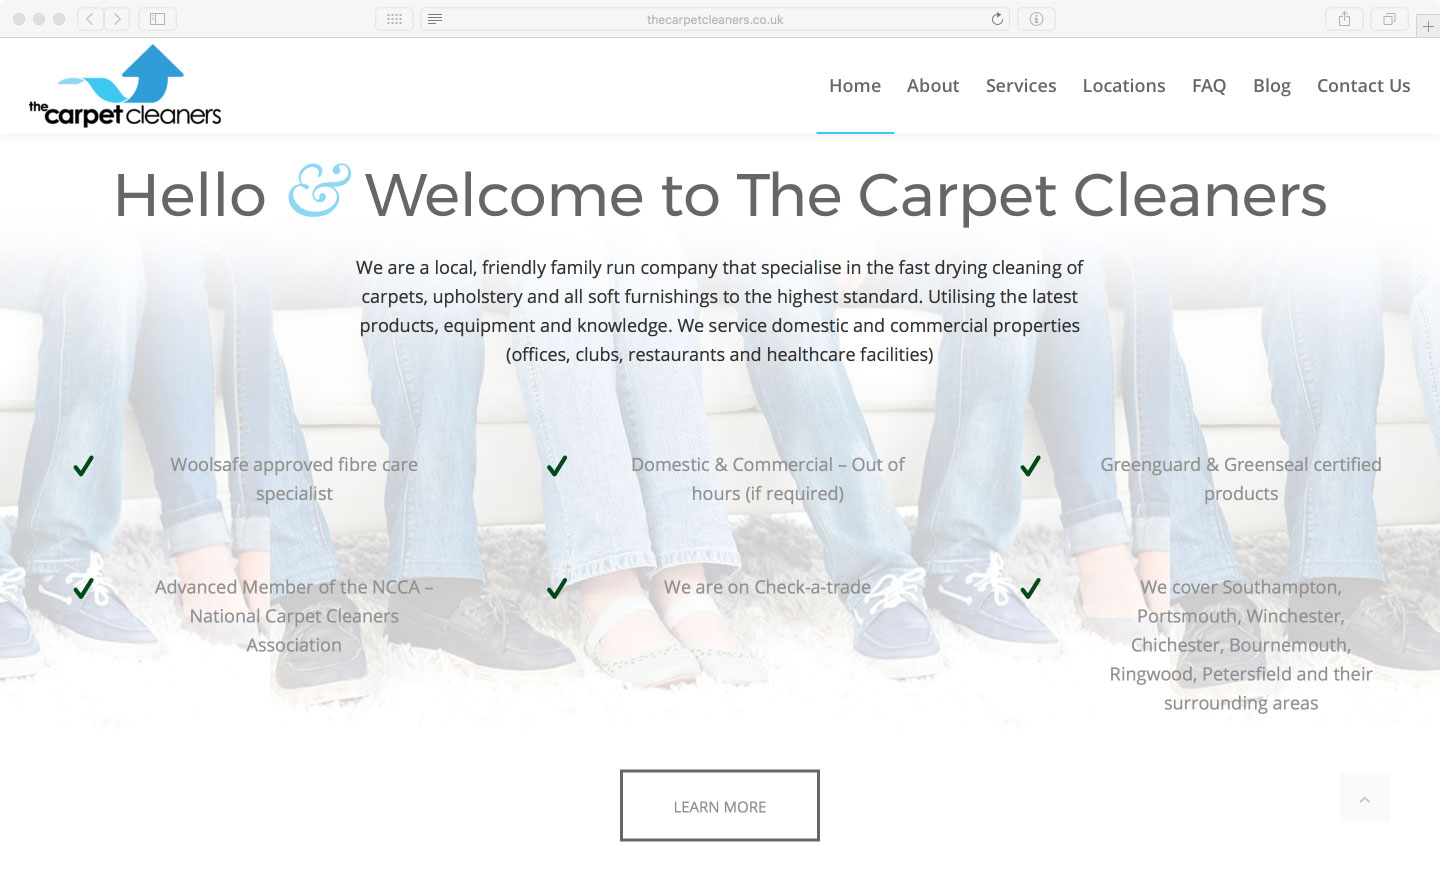 The Carpet Cleaners